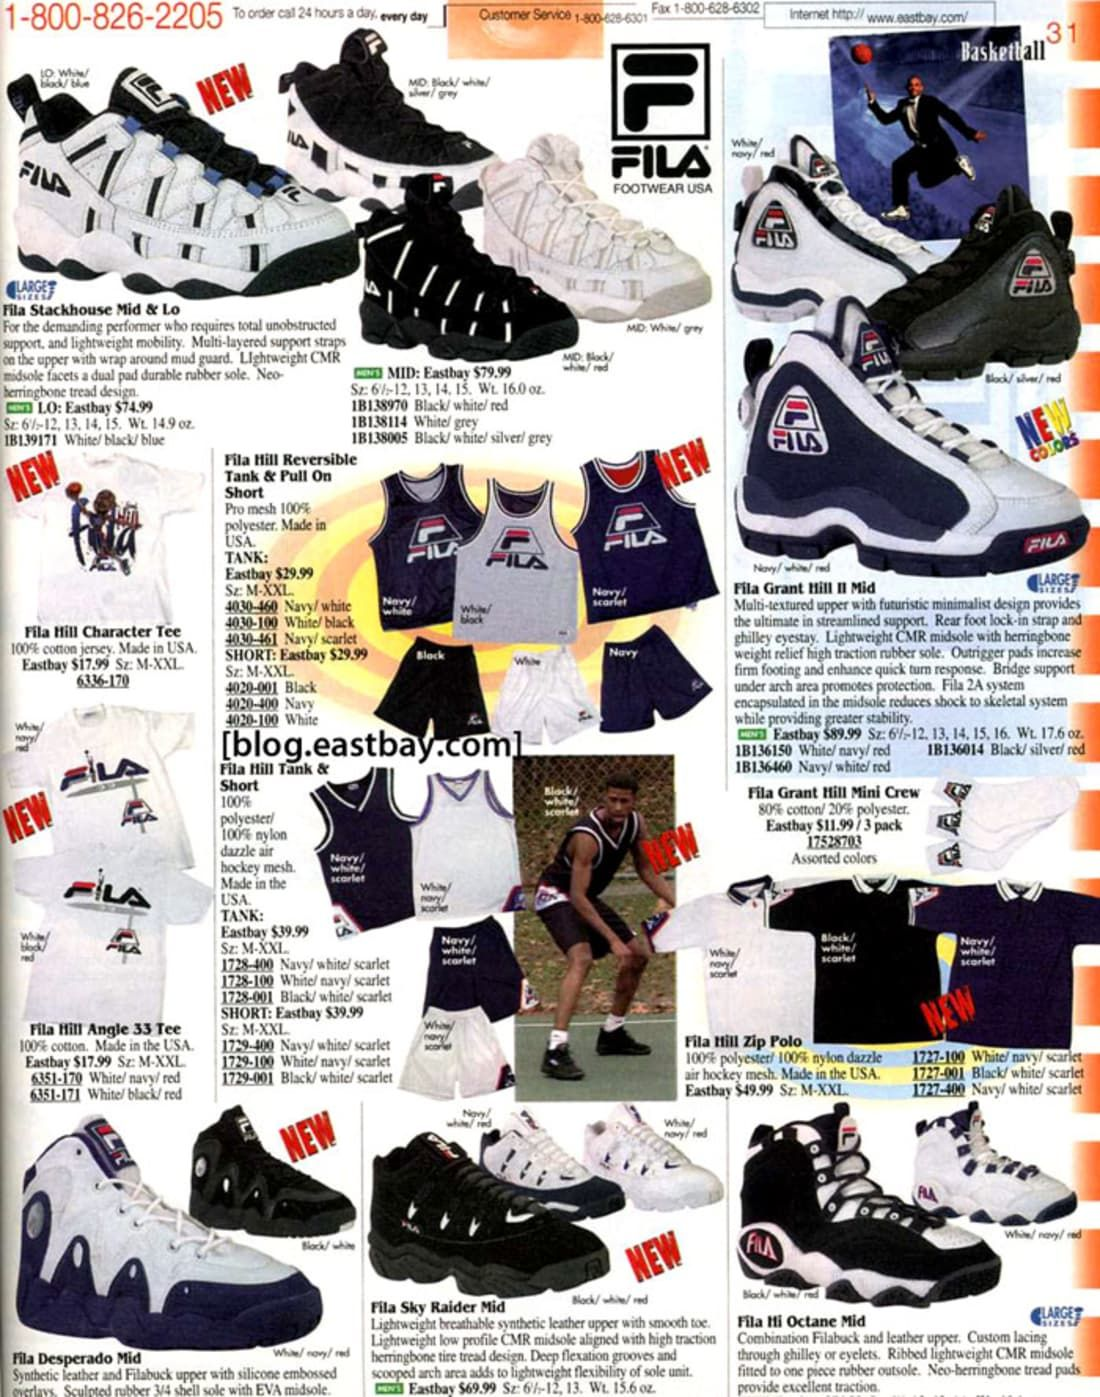 28b1d871ca46 25 Classic Sneakers From Vintage Eastbay CatalogsFila High Octane ...